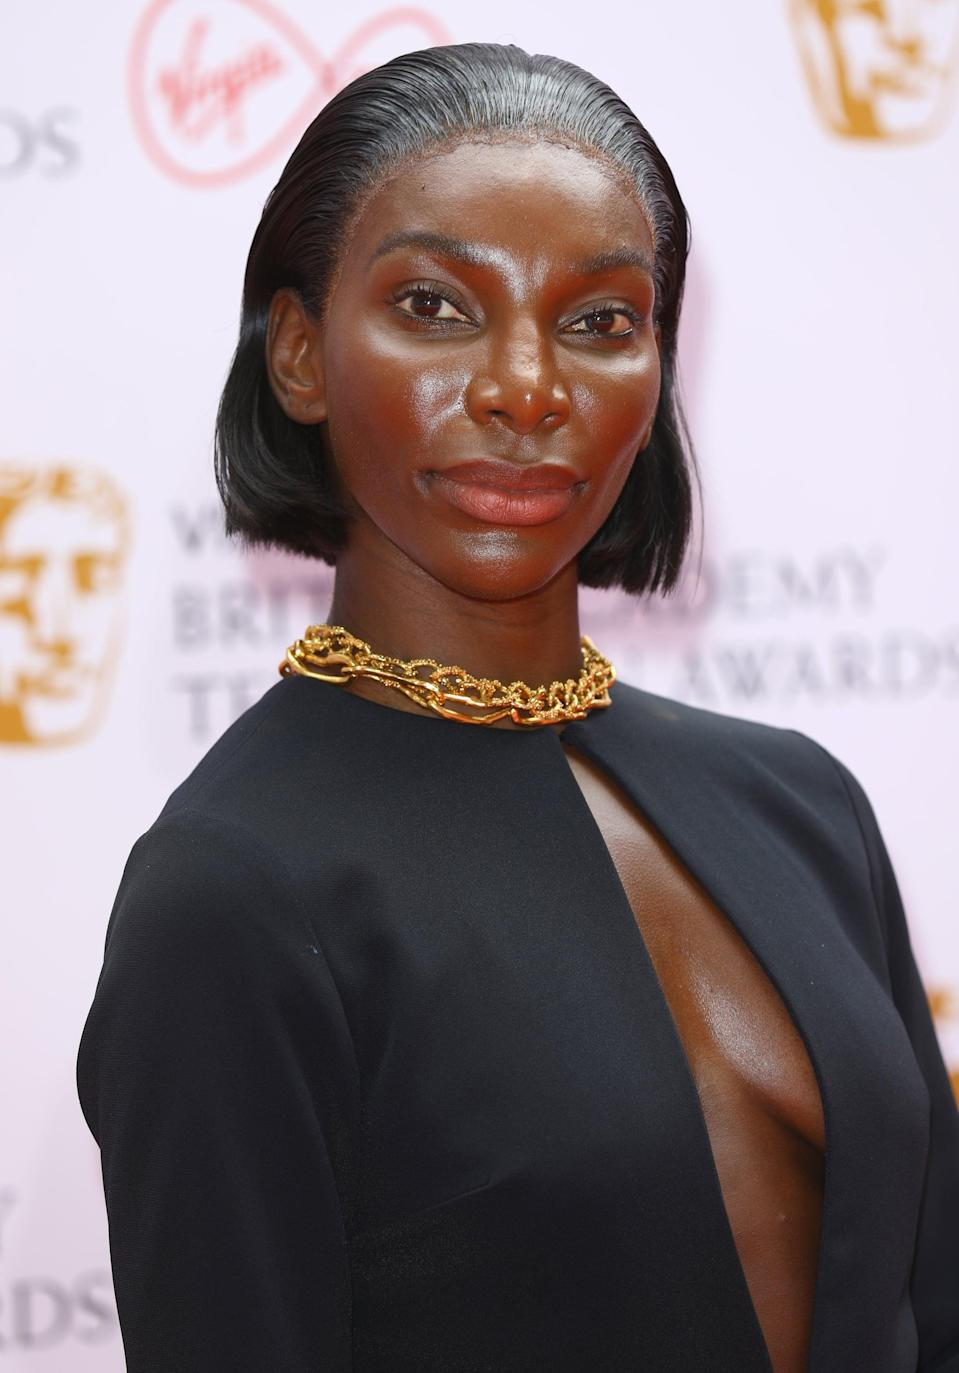 <p>Coel kept her beauty look simple for the evening with radiant skin and her blunt bob slicked back away from her face - keeping all the attention on the dramatic silhouette of her gown.</p>